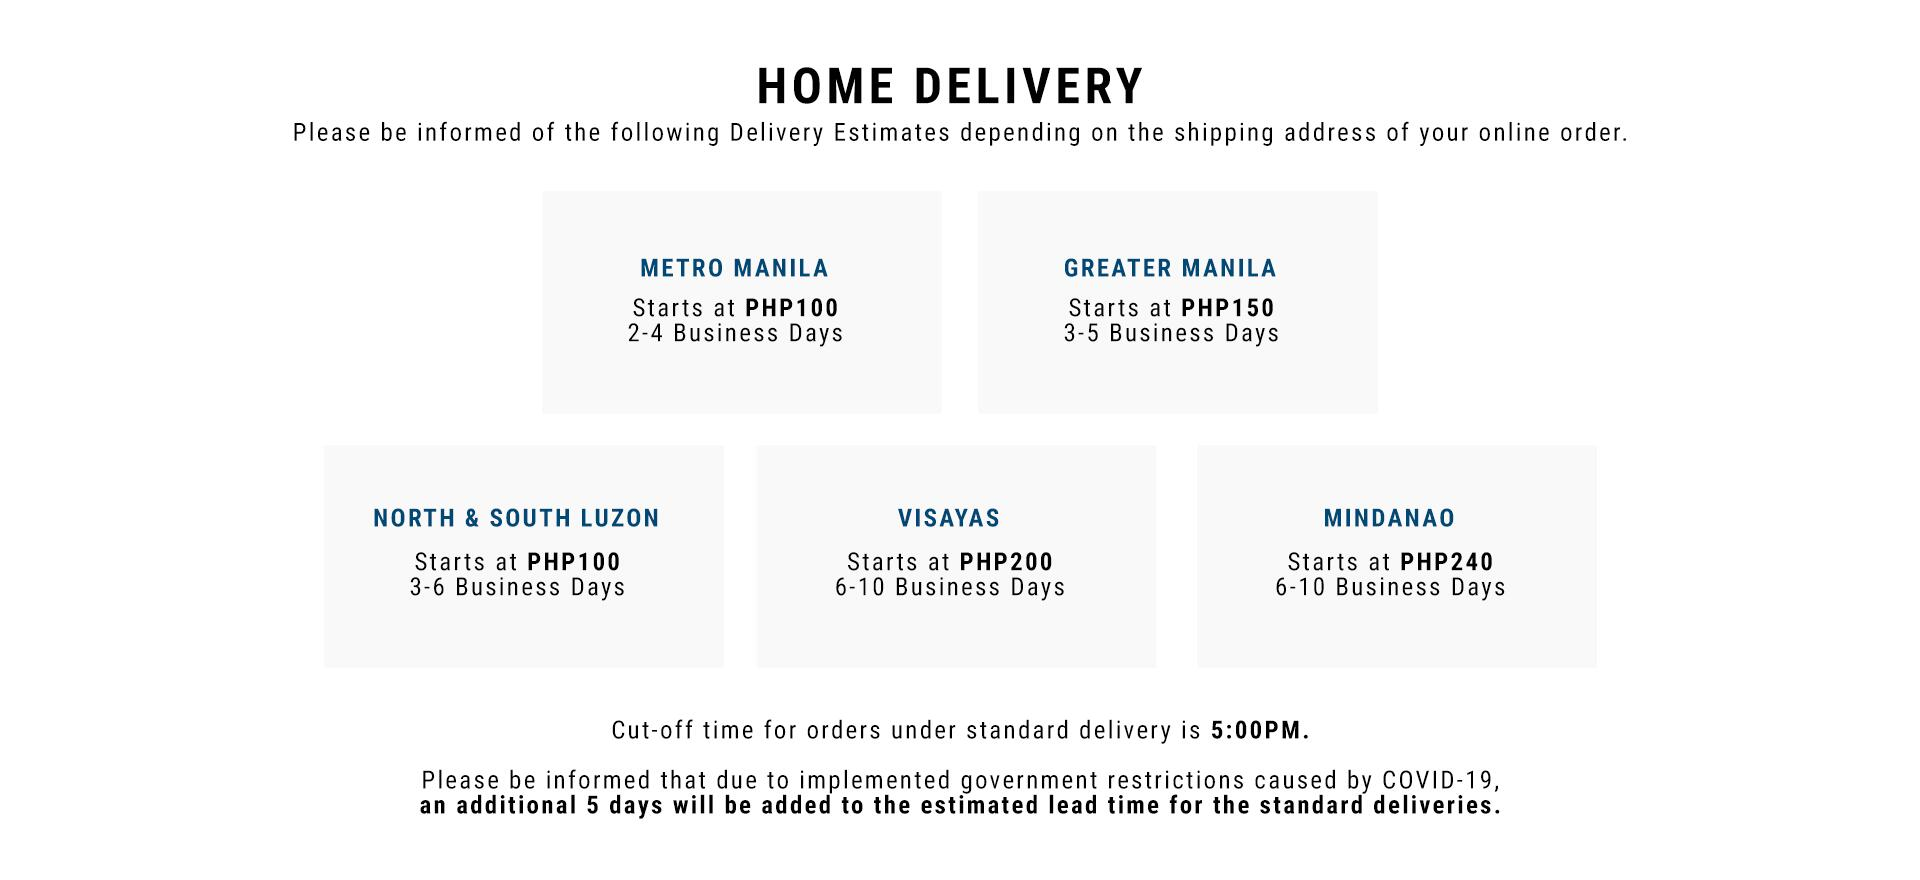 Home Delivery and Next Day Delivery